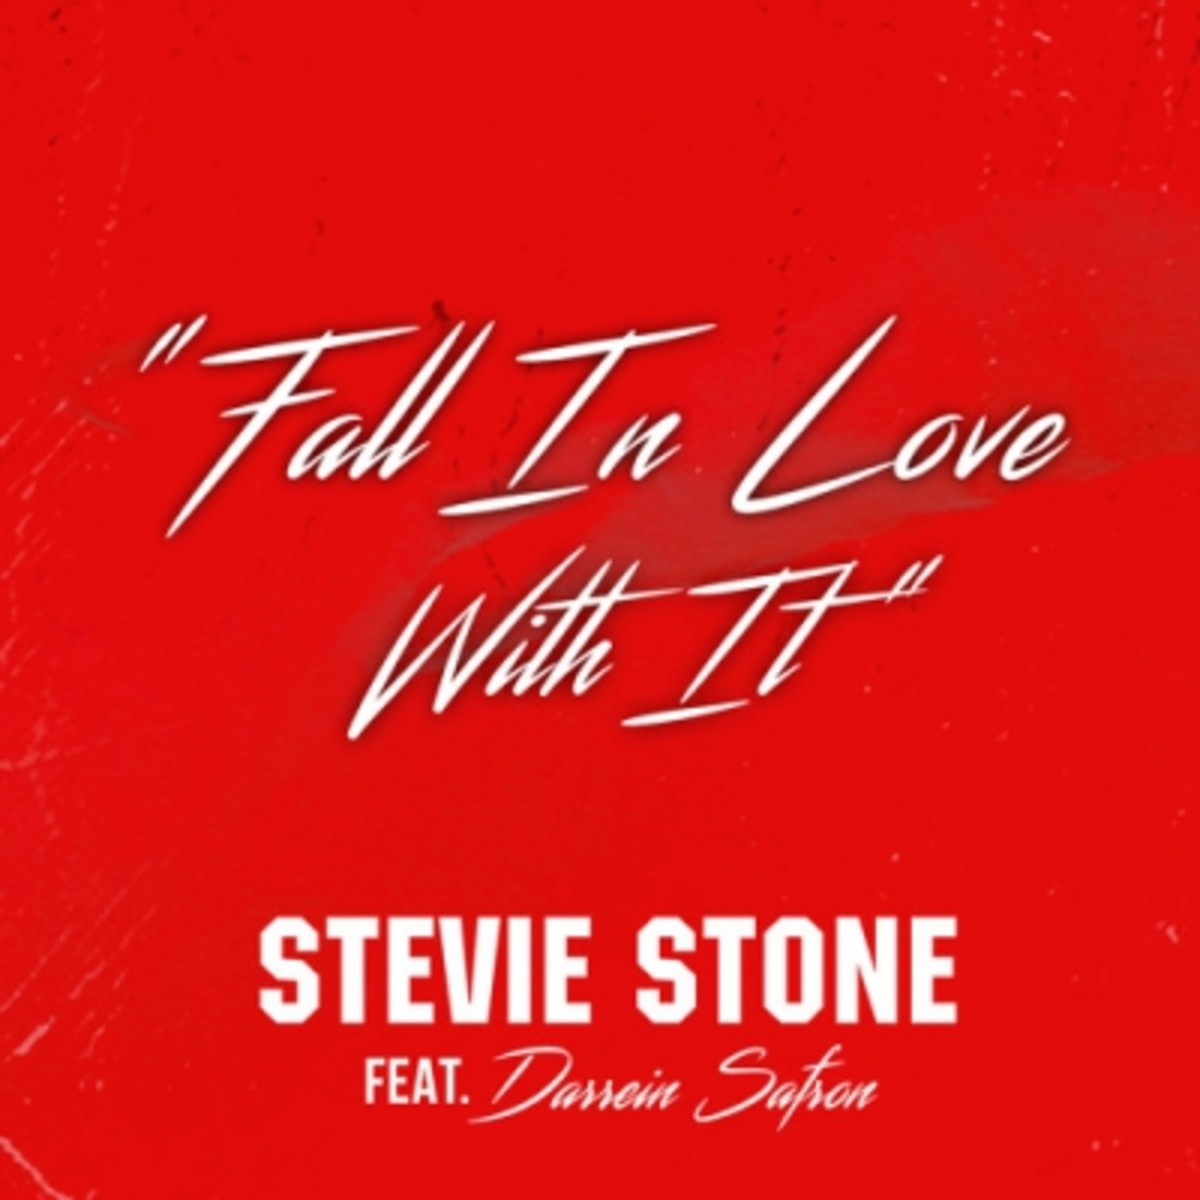 stevie-stone-fall-in-love-with-it.jpg